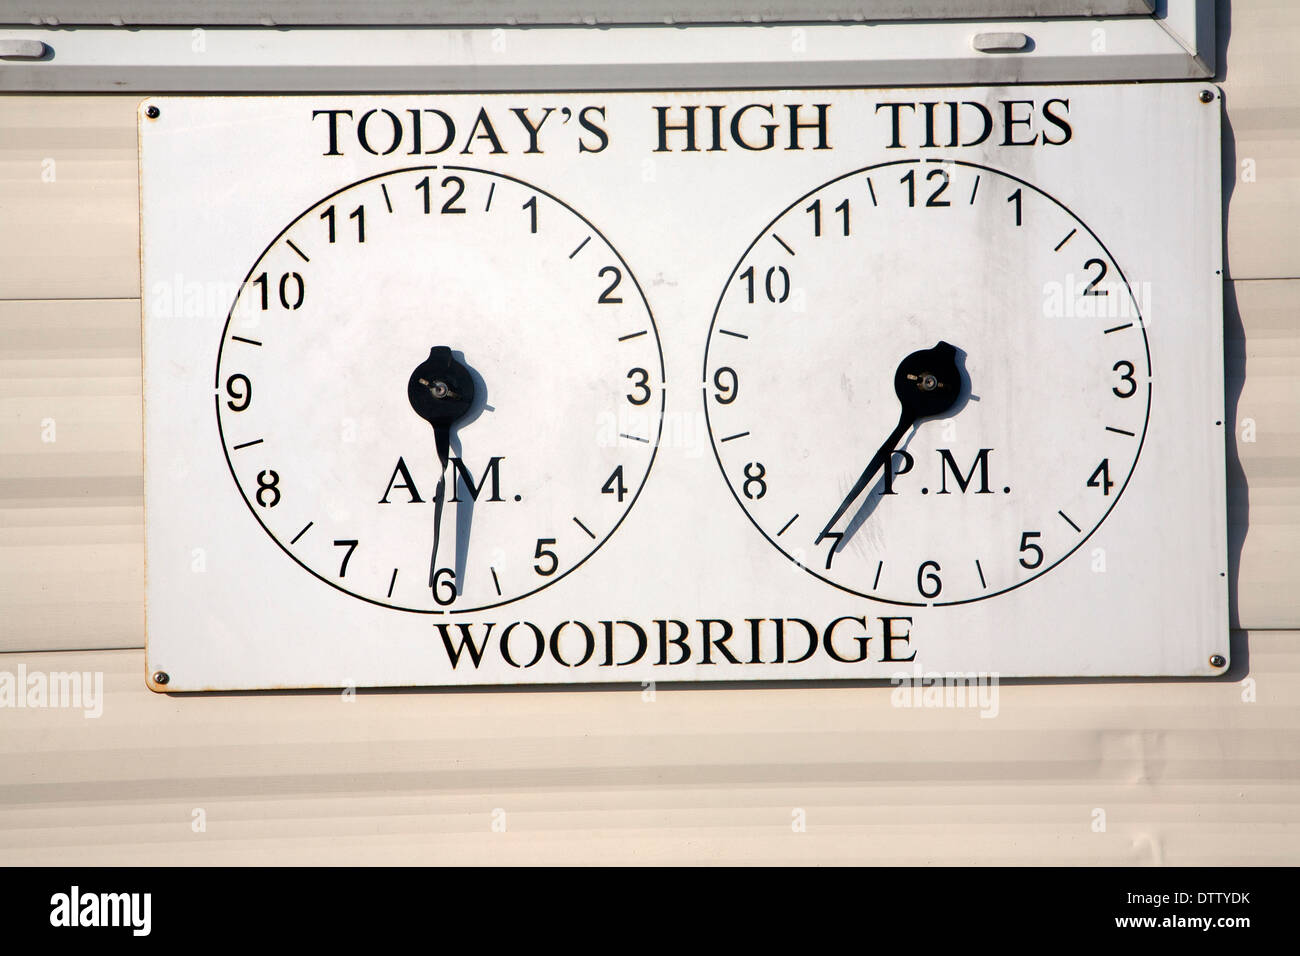 Two clocks showing times of high tides at Woodbridge, Suffolk, England - Stock Image